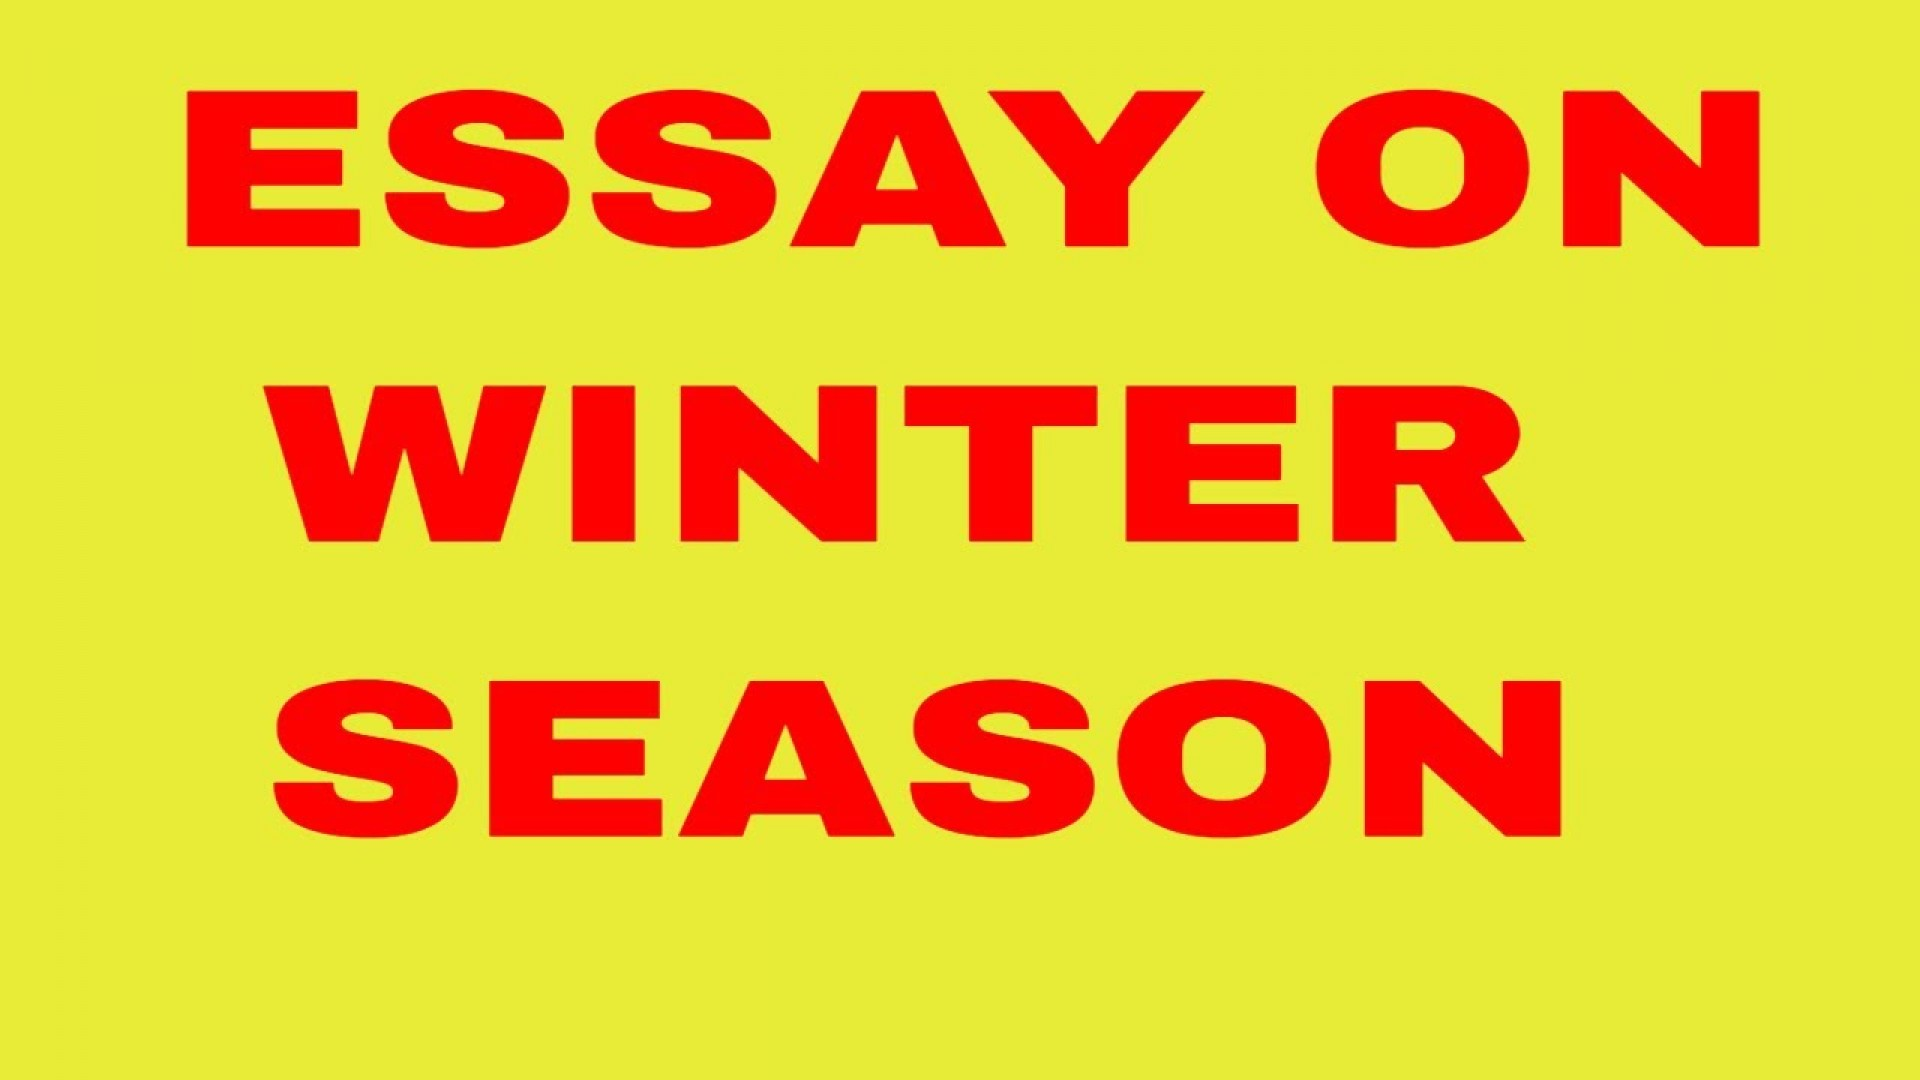 006 Winter Essay Maxresdefault Phenomenal Topics Season For Class 7 In Urdu On 6 1920